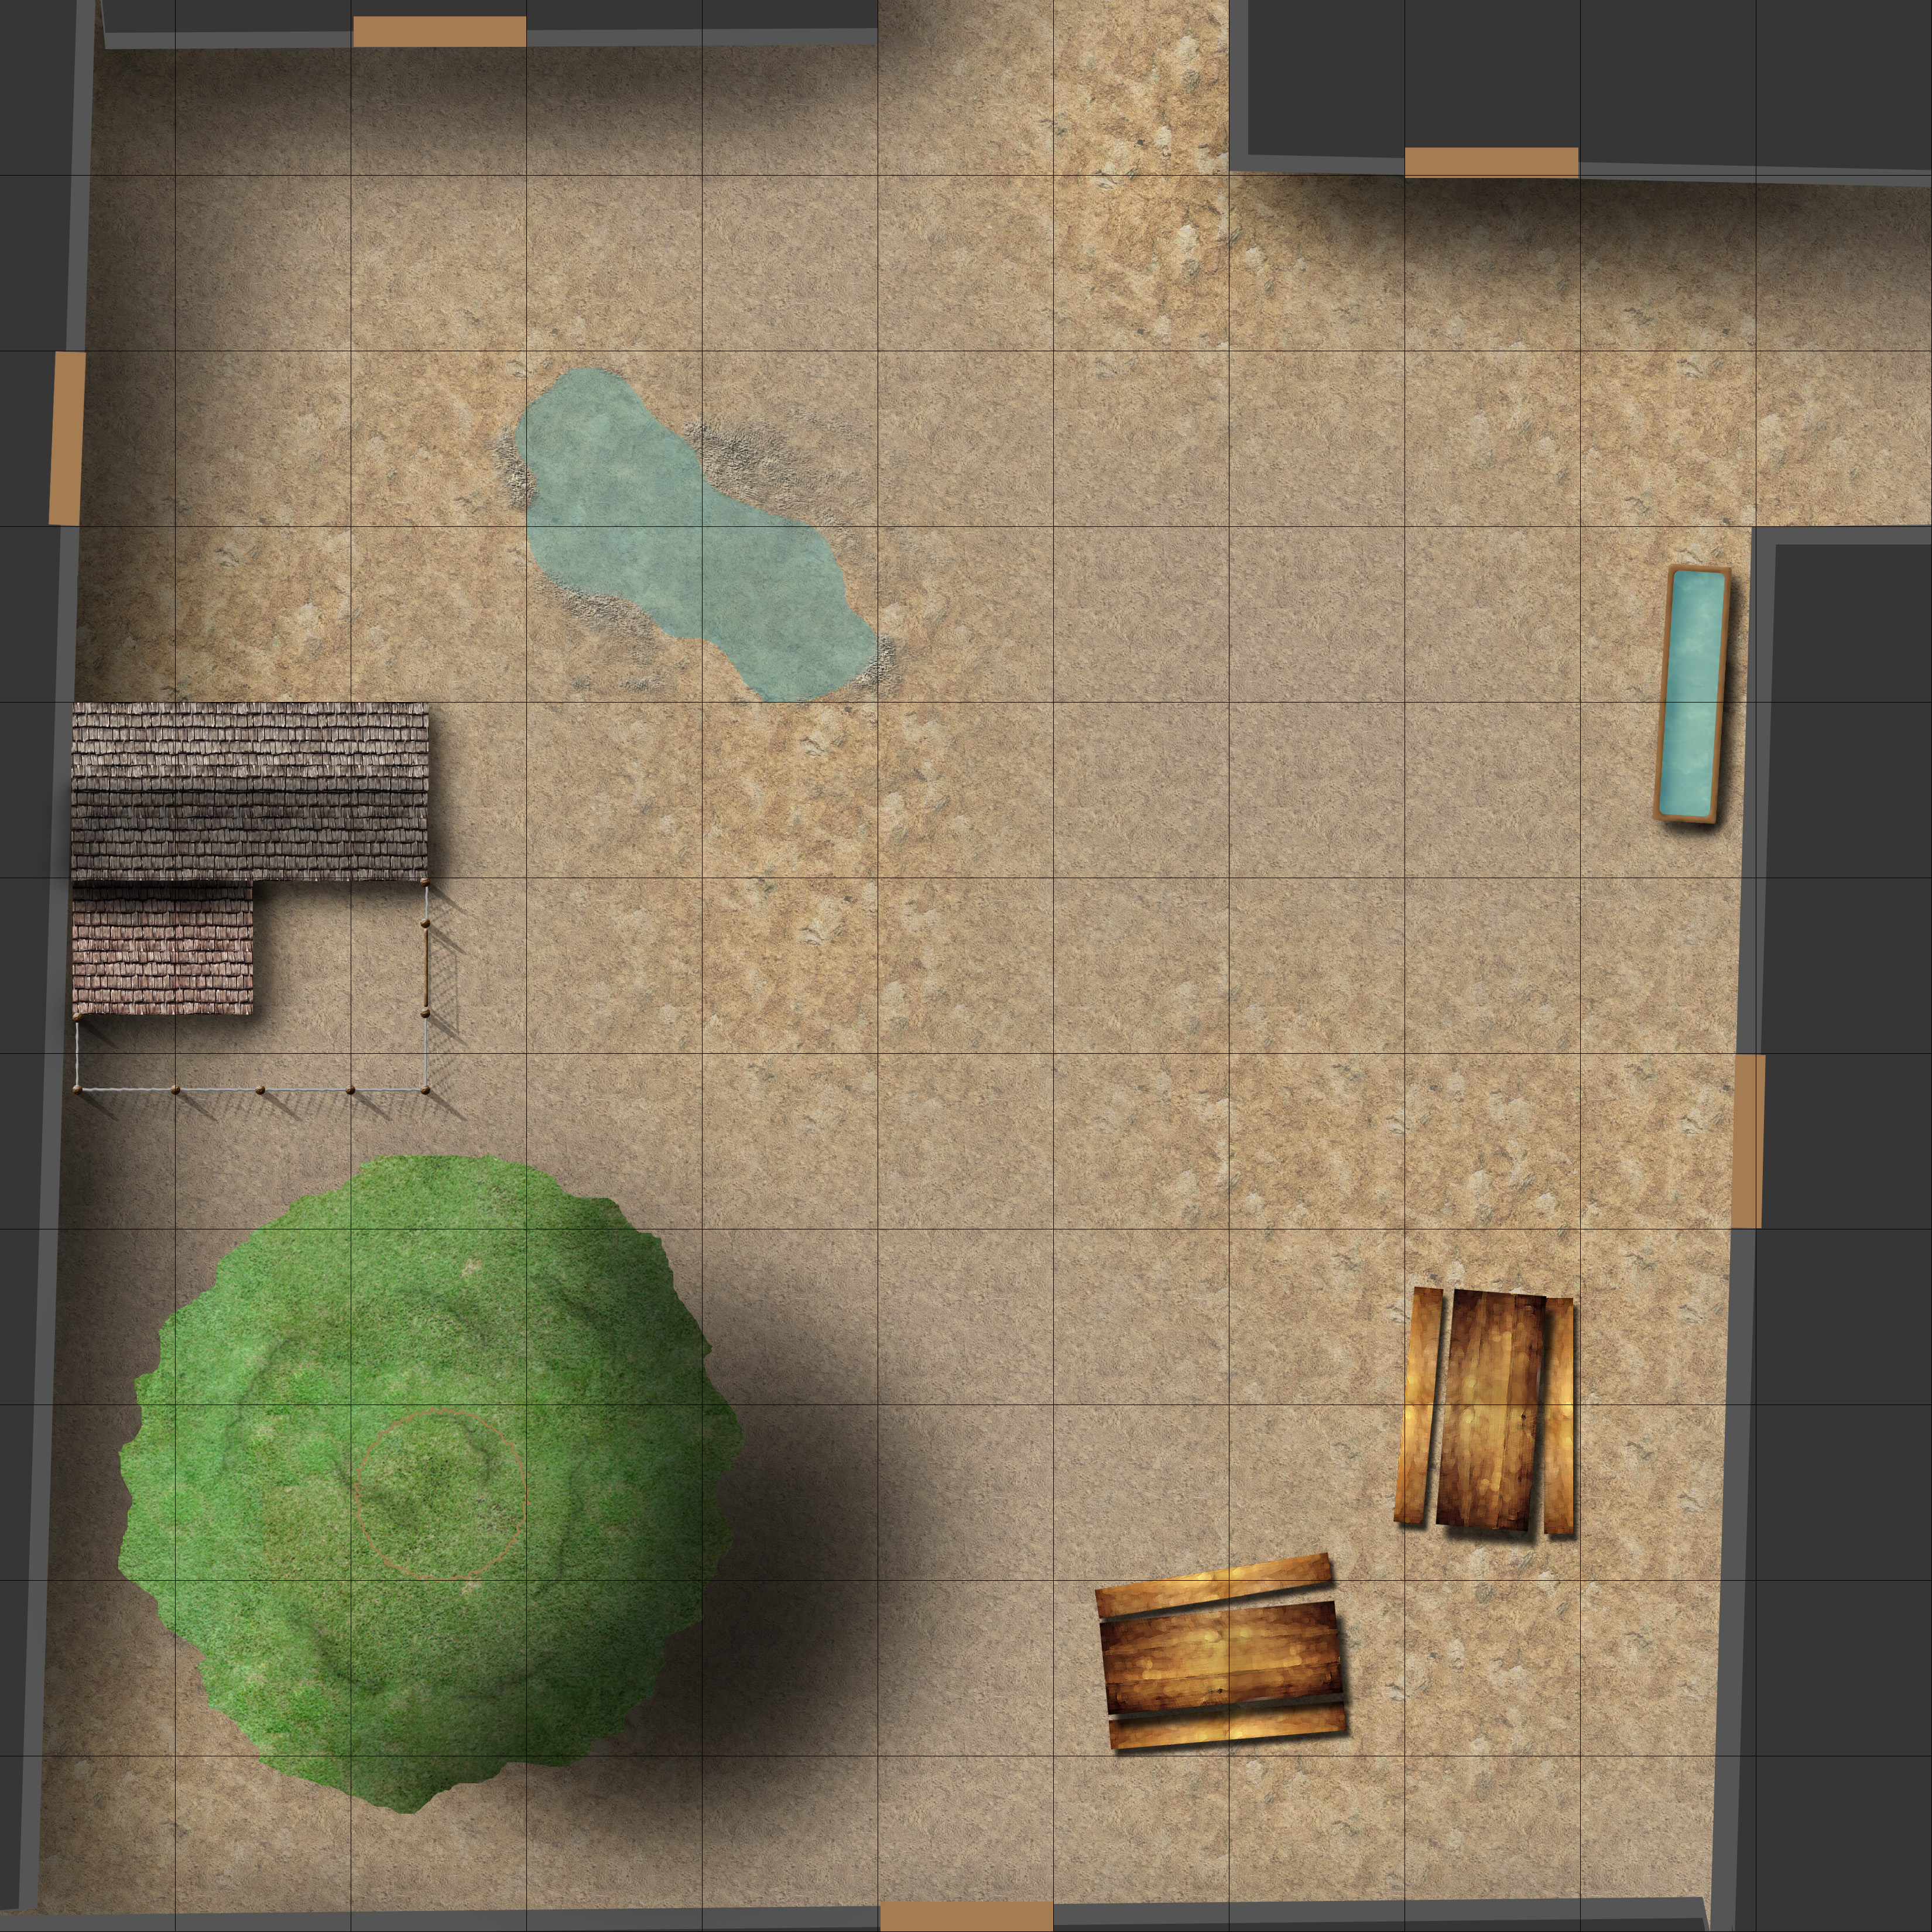 Combat map of a backyard i a random city